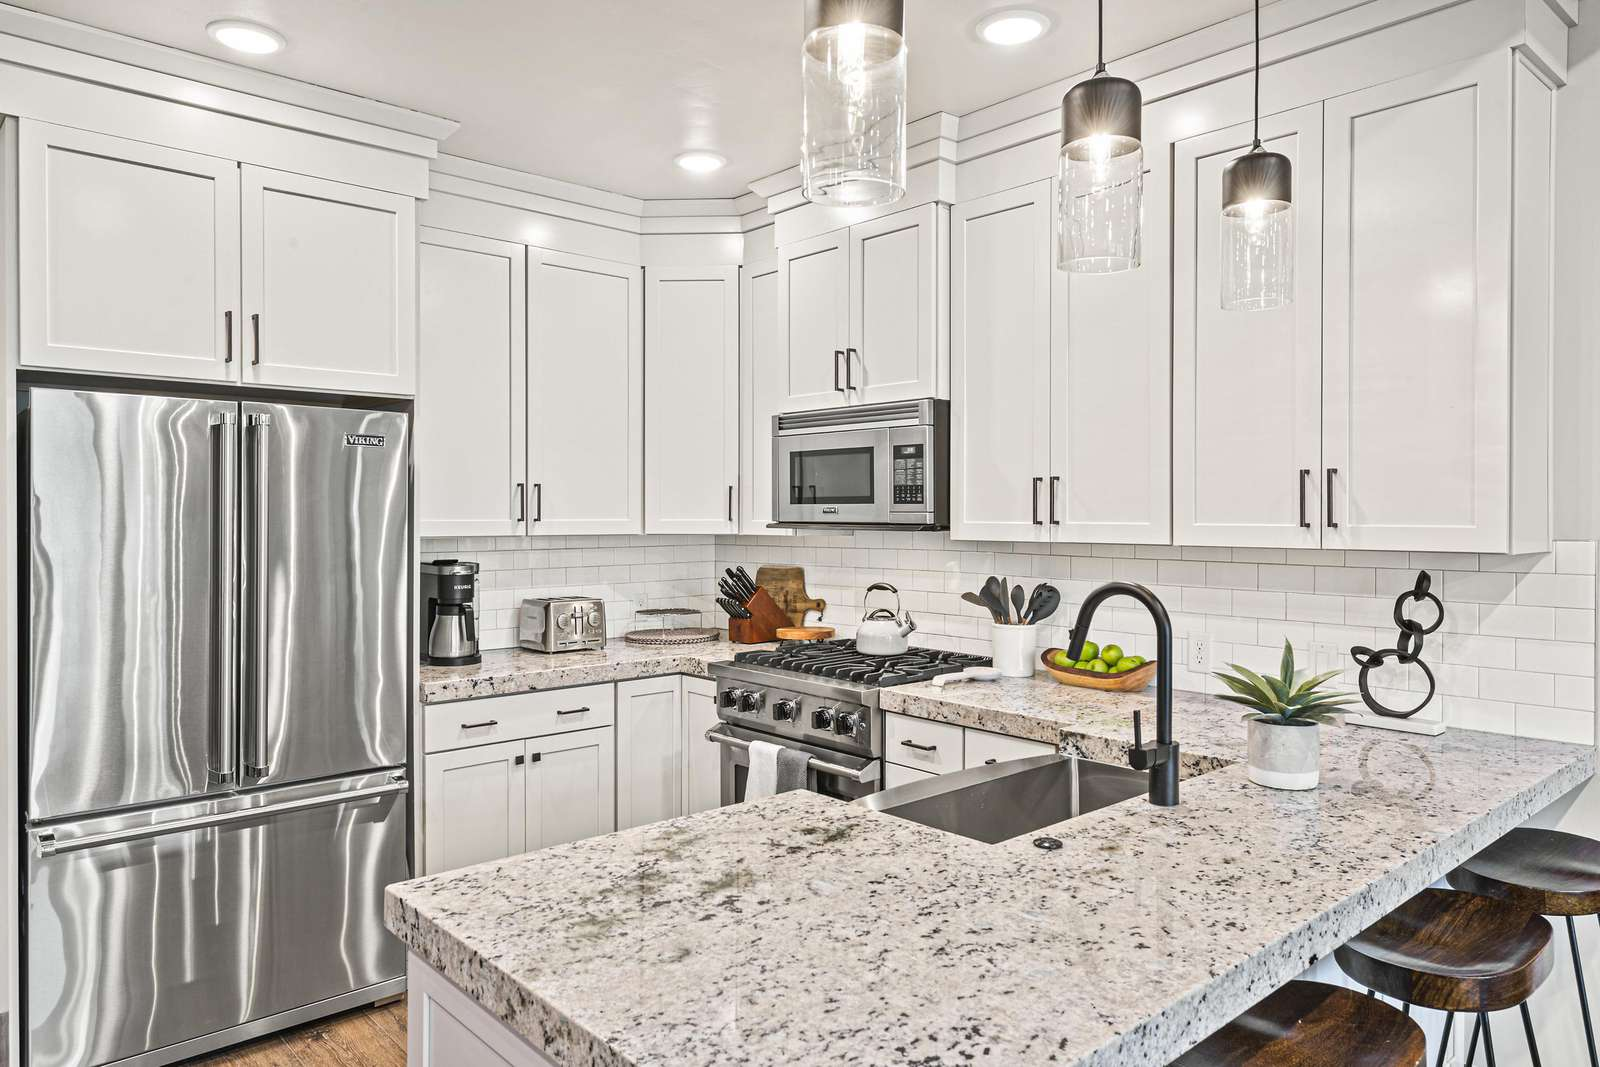 Full modern kitchen with farmhouse sink and granite countertop